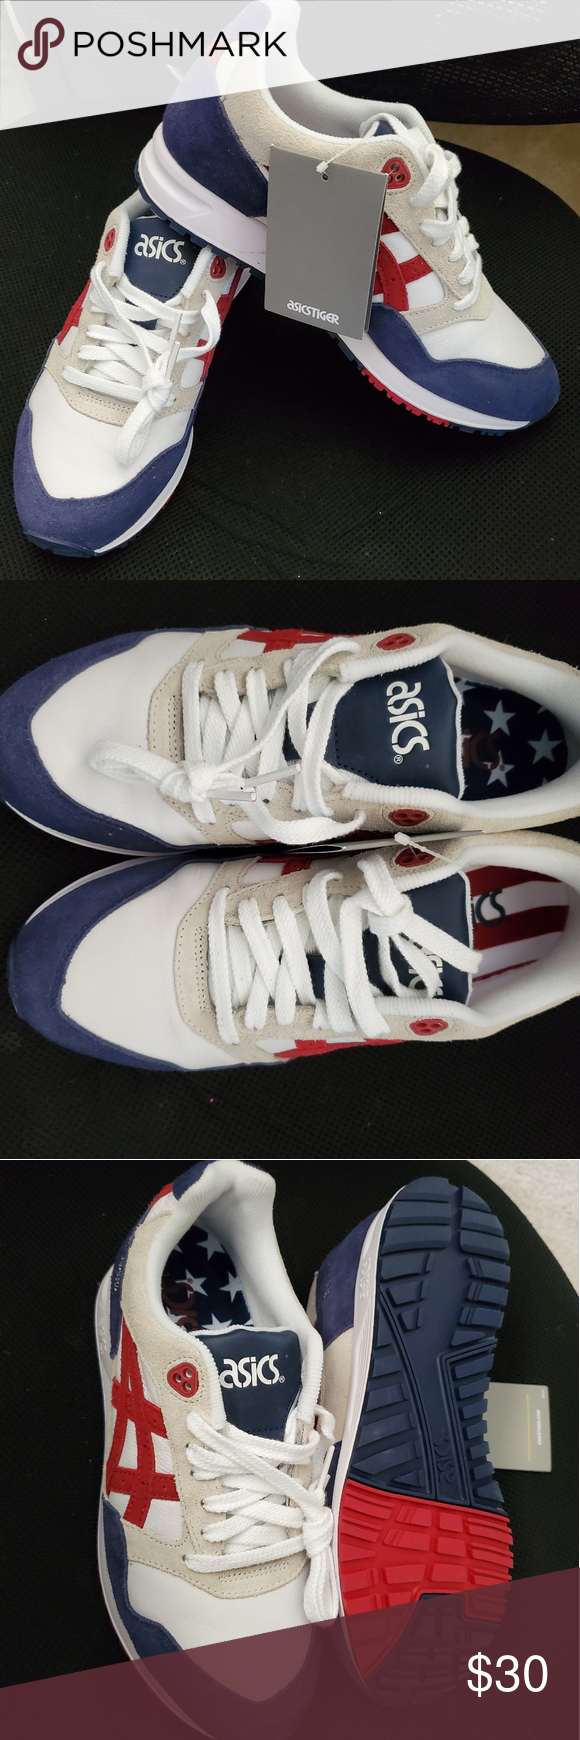 ASICS shoes size 6 MENS Stars and